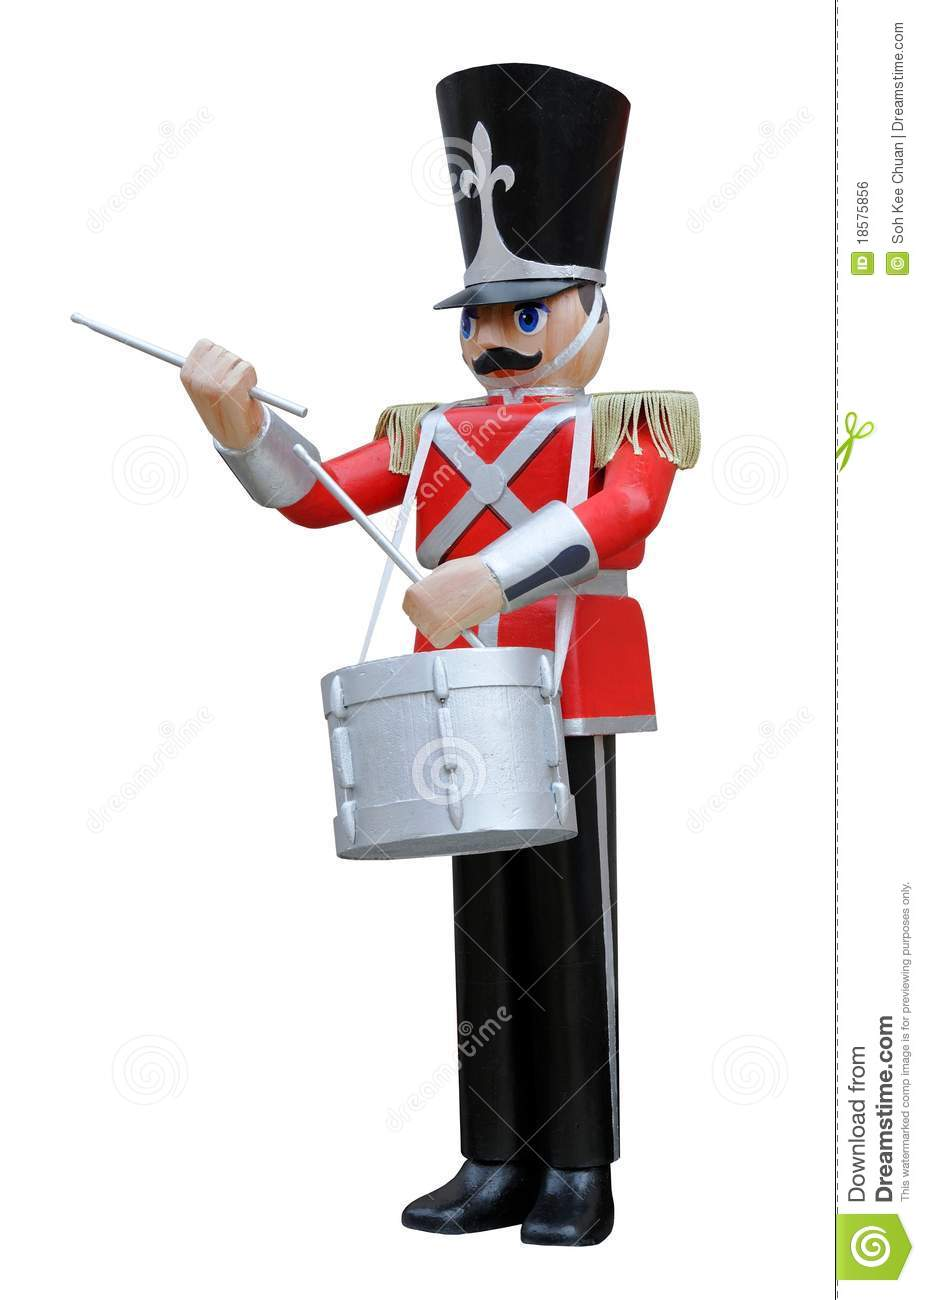 Toy Soldier Drummer Royalty Free Stock Image Image 18575856